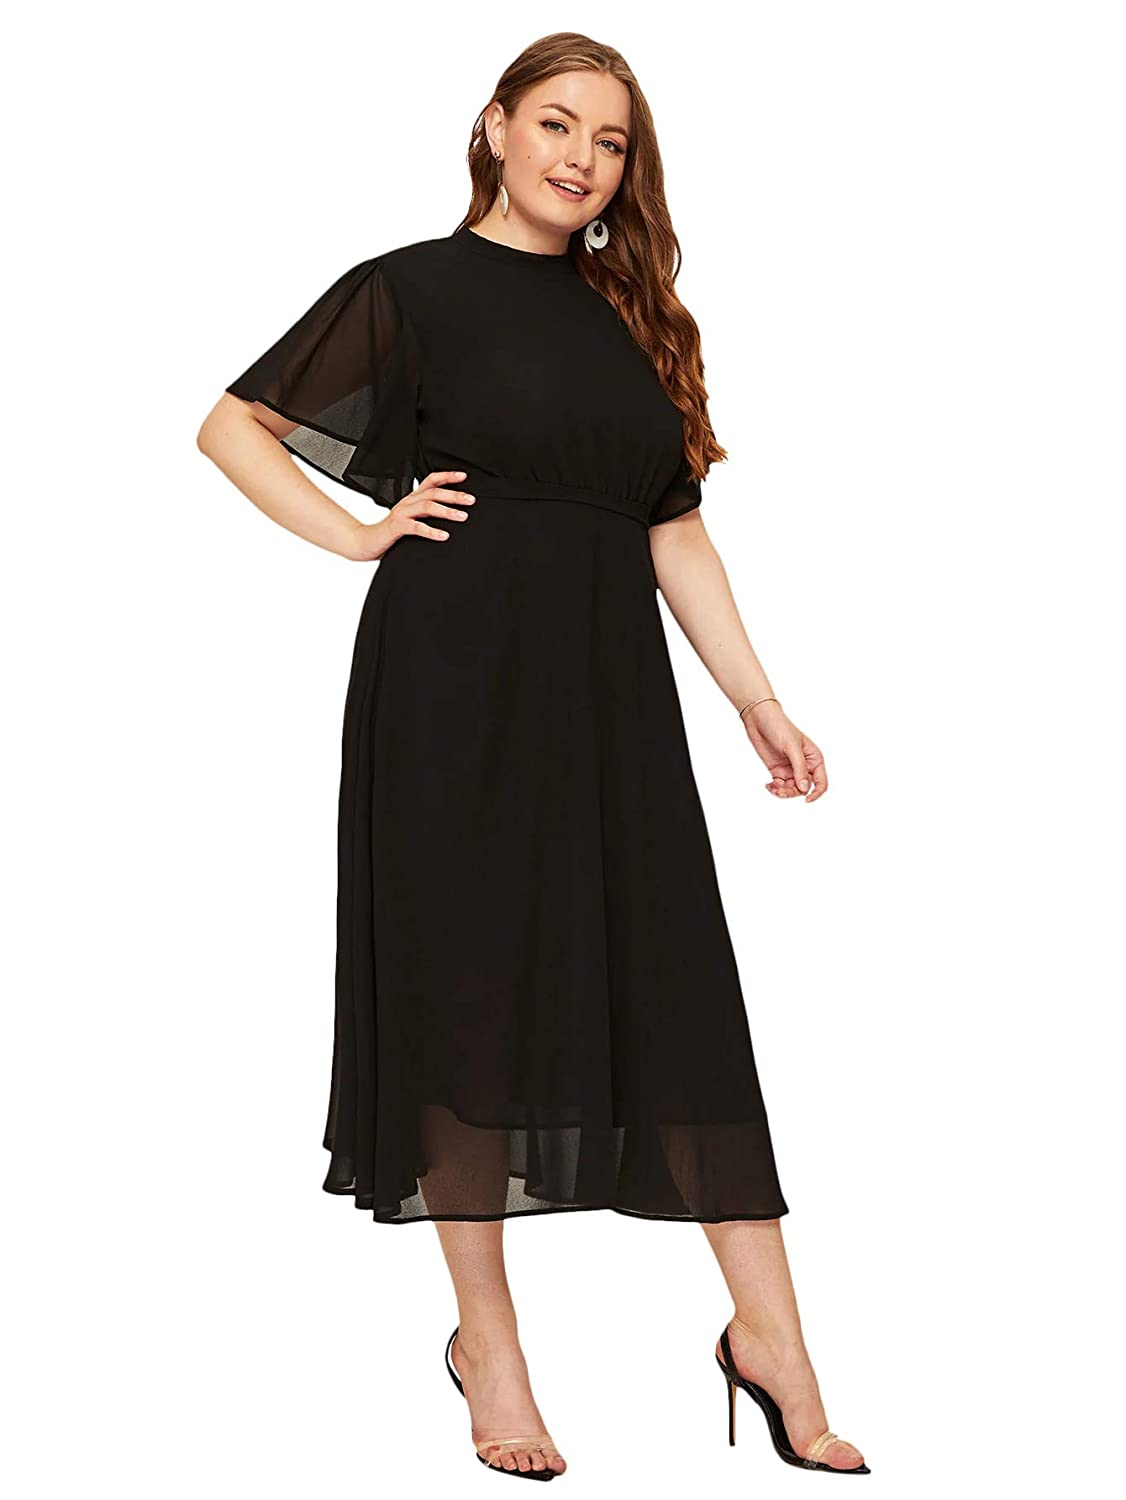 1930s Plus Size Dresses | Art Deco Plus Size Dresses Milumia Womens Plus Size Formal Chiffon Cocktail Flounce Sleeve Maxi Party Dress $36.99 AT vintagedancer.com